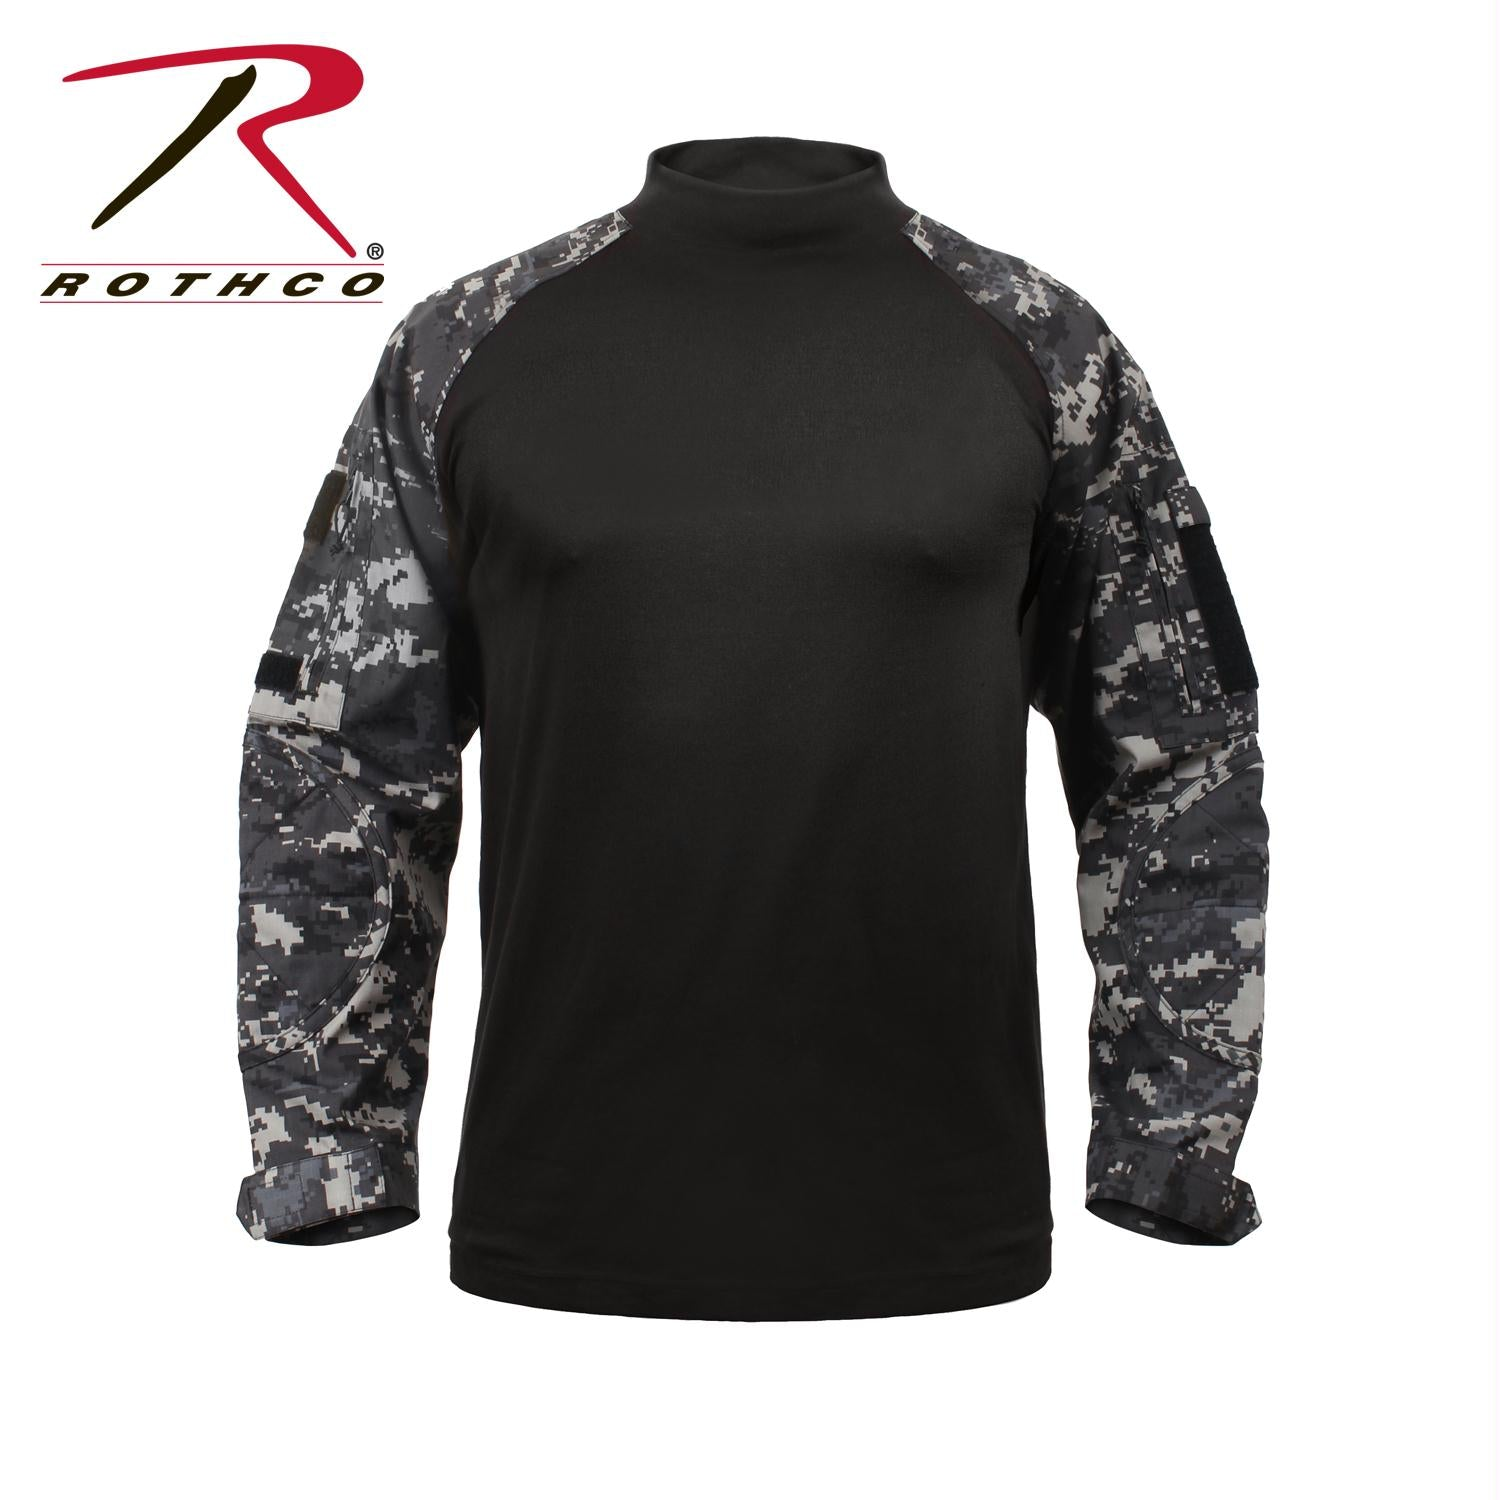 Rothco Military FR NYCO Combat Shirt - Subdued Urban Digital Camo / 3XL